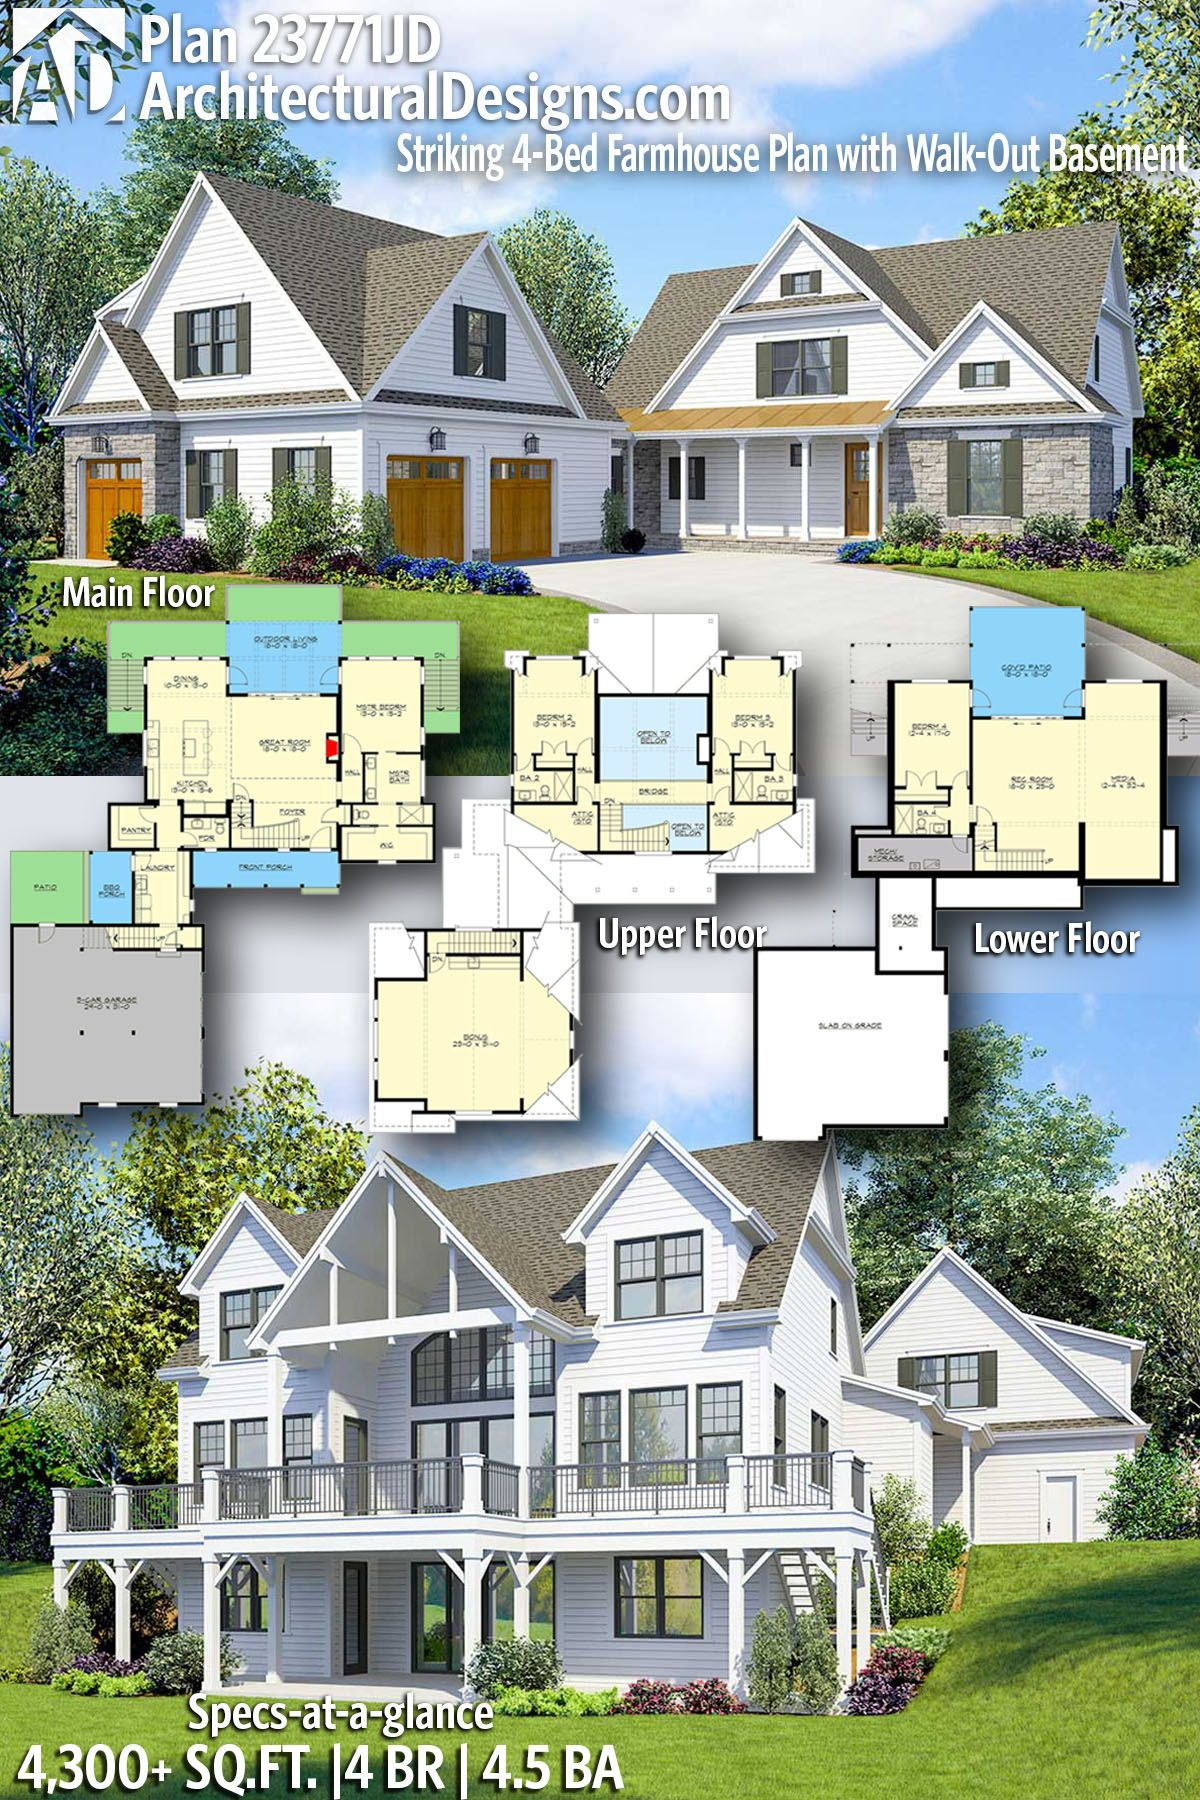 Plan 23771jd Striking 4 Bed Farmhouse Plan With Walk Out Basement Farmhouse Plans House Plans Farmhouse New House Plans